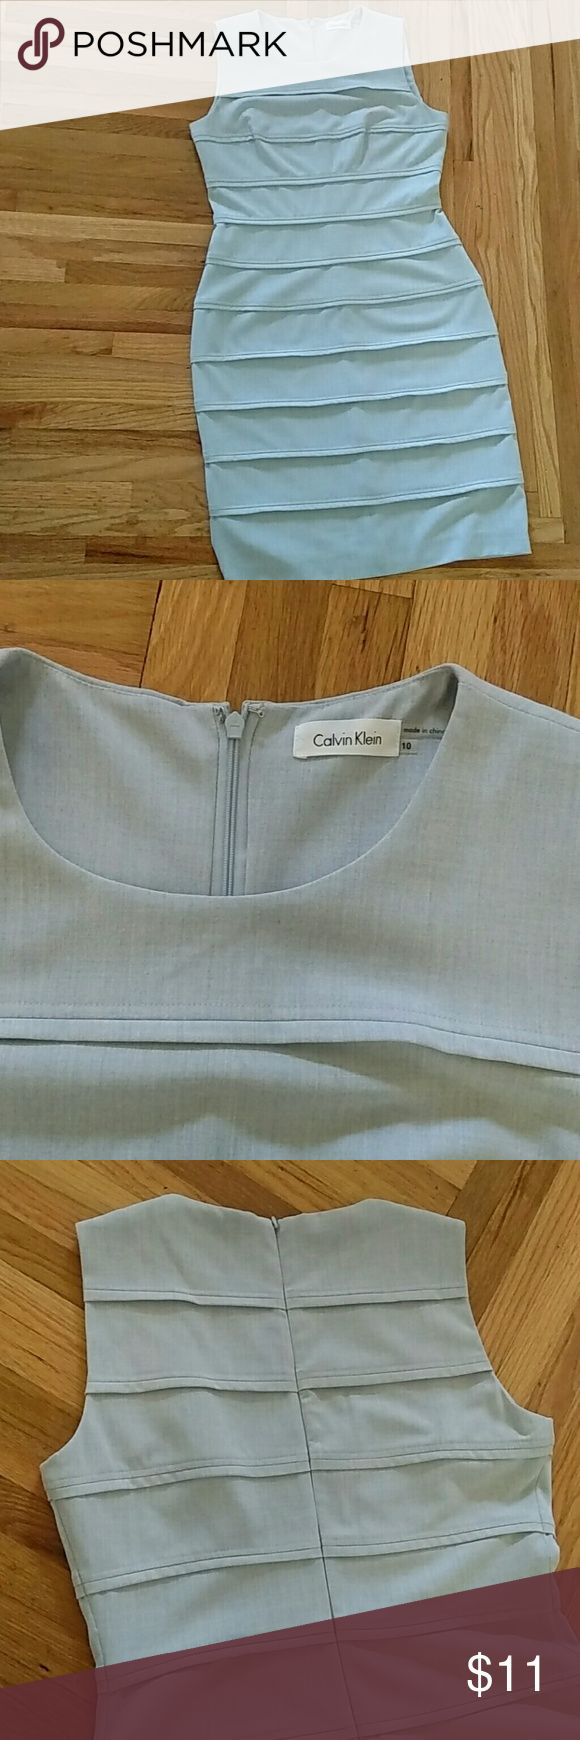 """Calvin Klein Light Blue Dress Size 10 Well Made Fitted Dress hugs your curves and stretches for comfort. Packs easily and no signs of wear. Thick forgiving synthetic fabric. Very flattering on. I am 5'9"""" and it hits just above the knees. Willing to bundle. Calvin Klein Dresses Midi"""